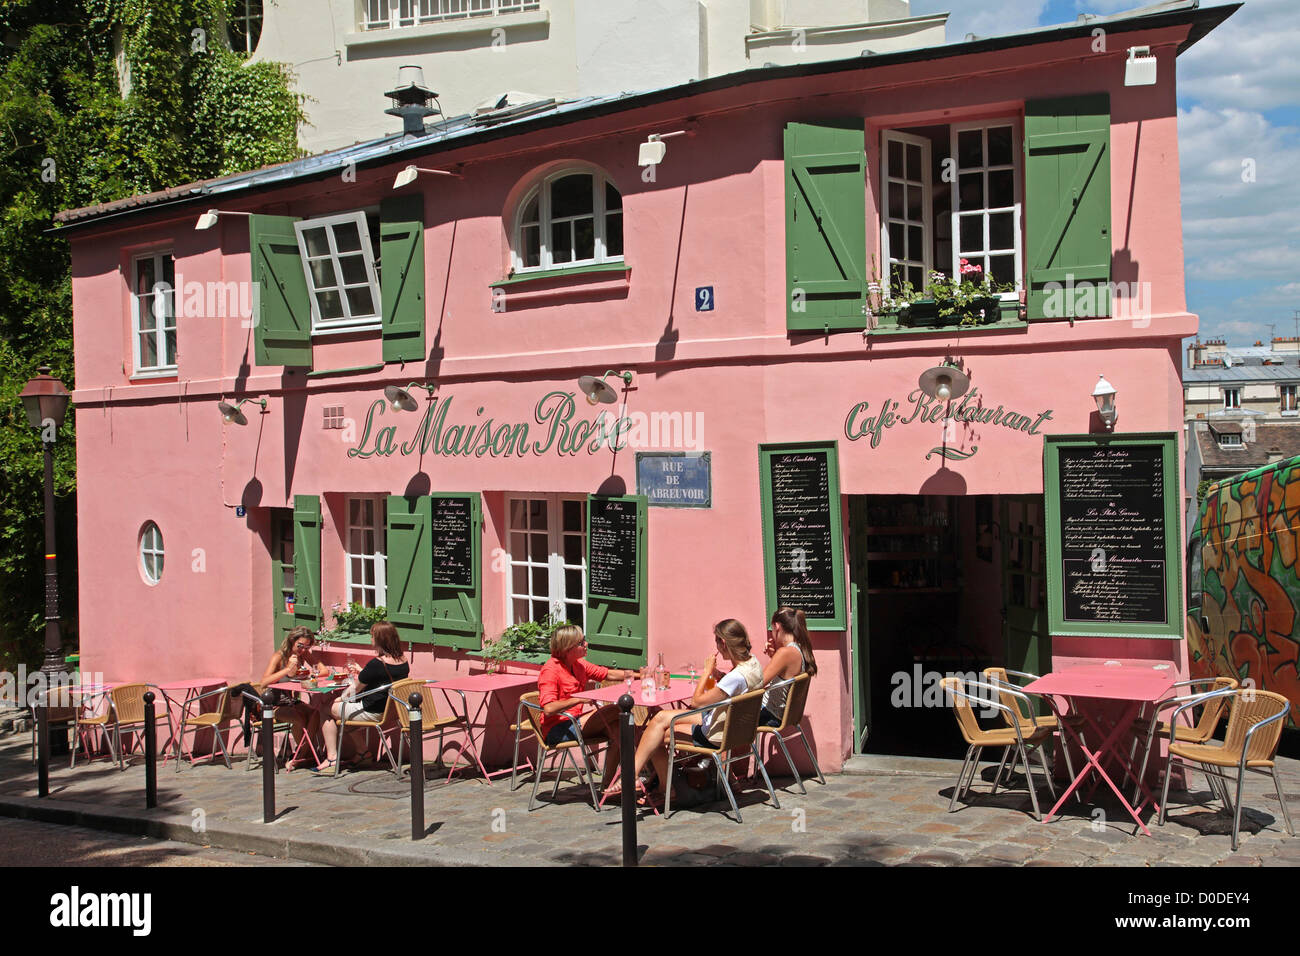 The terrace of the maison rose cafe restaurant on the for Le miroir restaurant montmartre